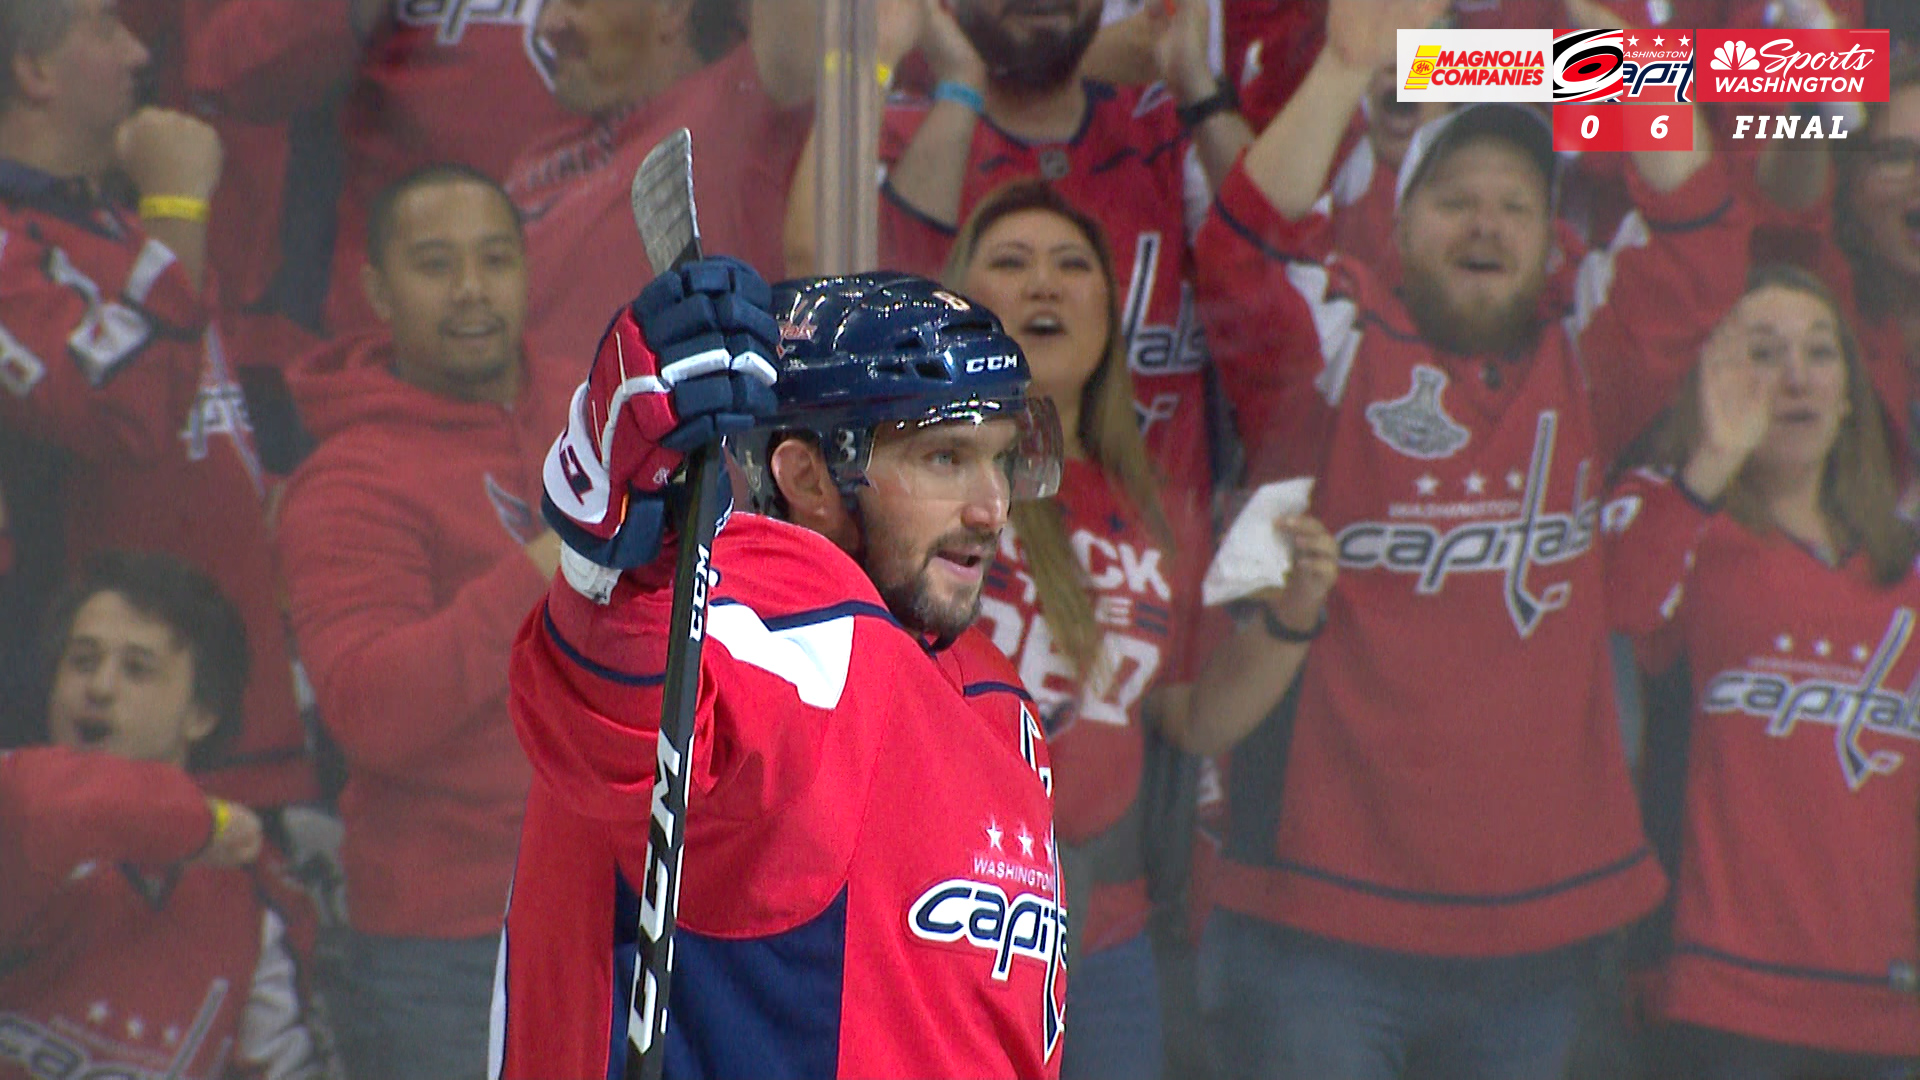 Capitals dominate Hurricanes 6-0 to take 3-2 series lead